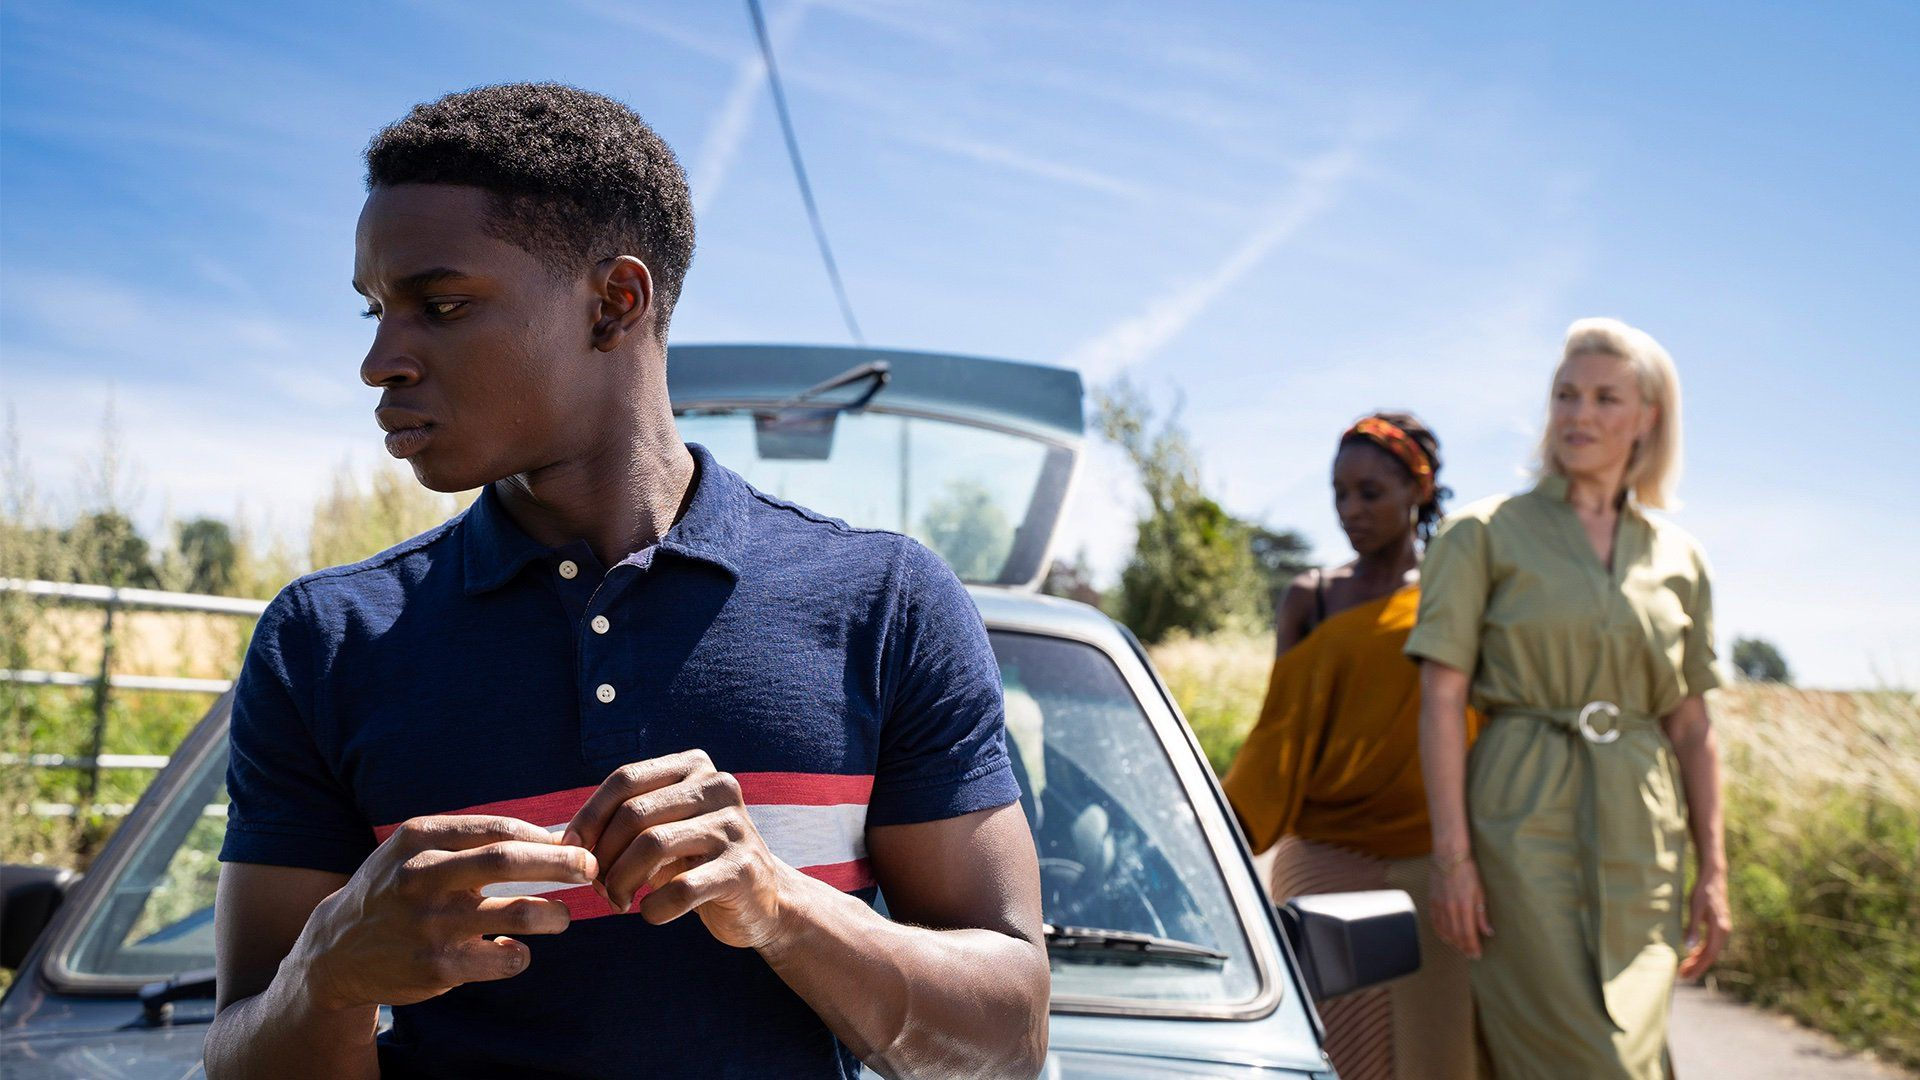 Image may contain: Finger, Undershirt, Vehicle, Automobile, Car, Transportation, Clothing, Apparel, Human, Person, sex education season 2 preview, netflix, otis milburn